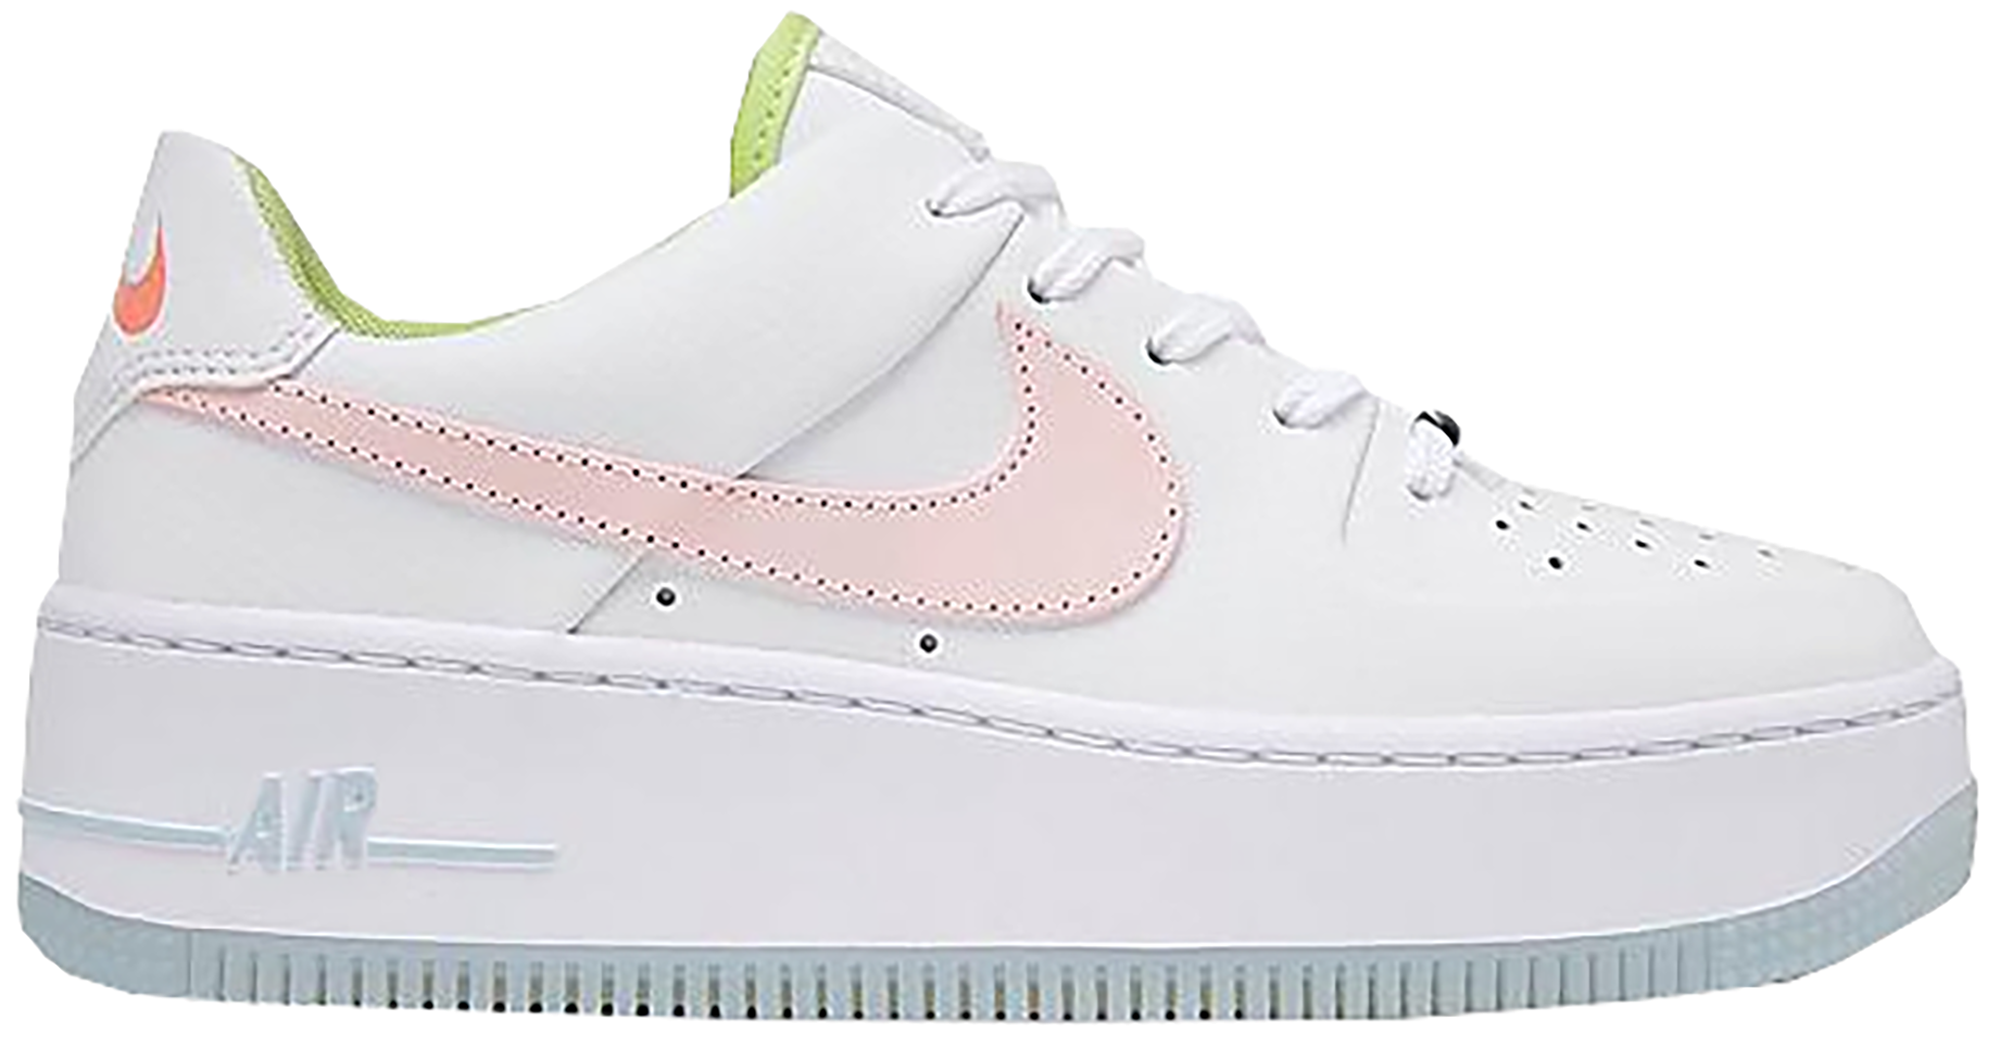 Nike Air Force 1 Sage Low One Of One W In 2021 Air Jordan Sneakers Nike Air Nike Air Force